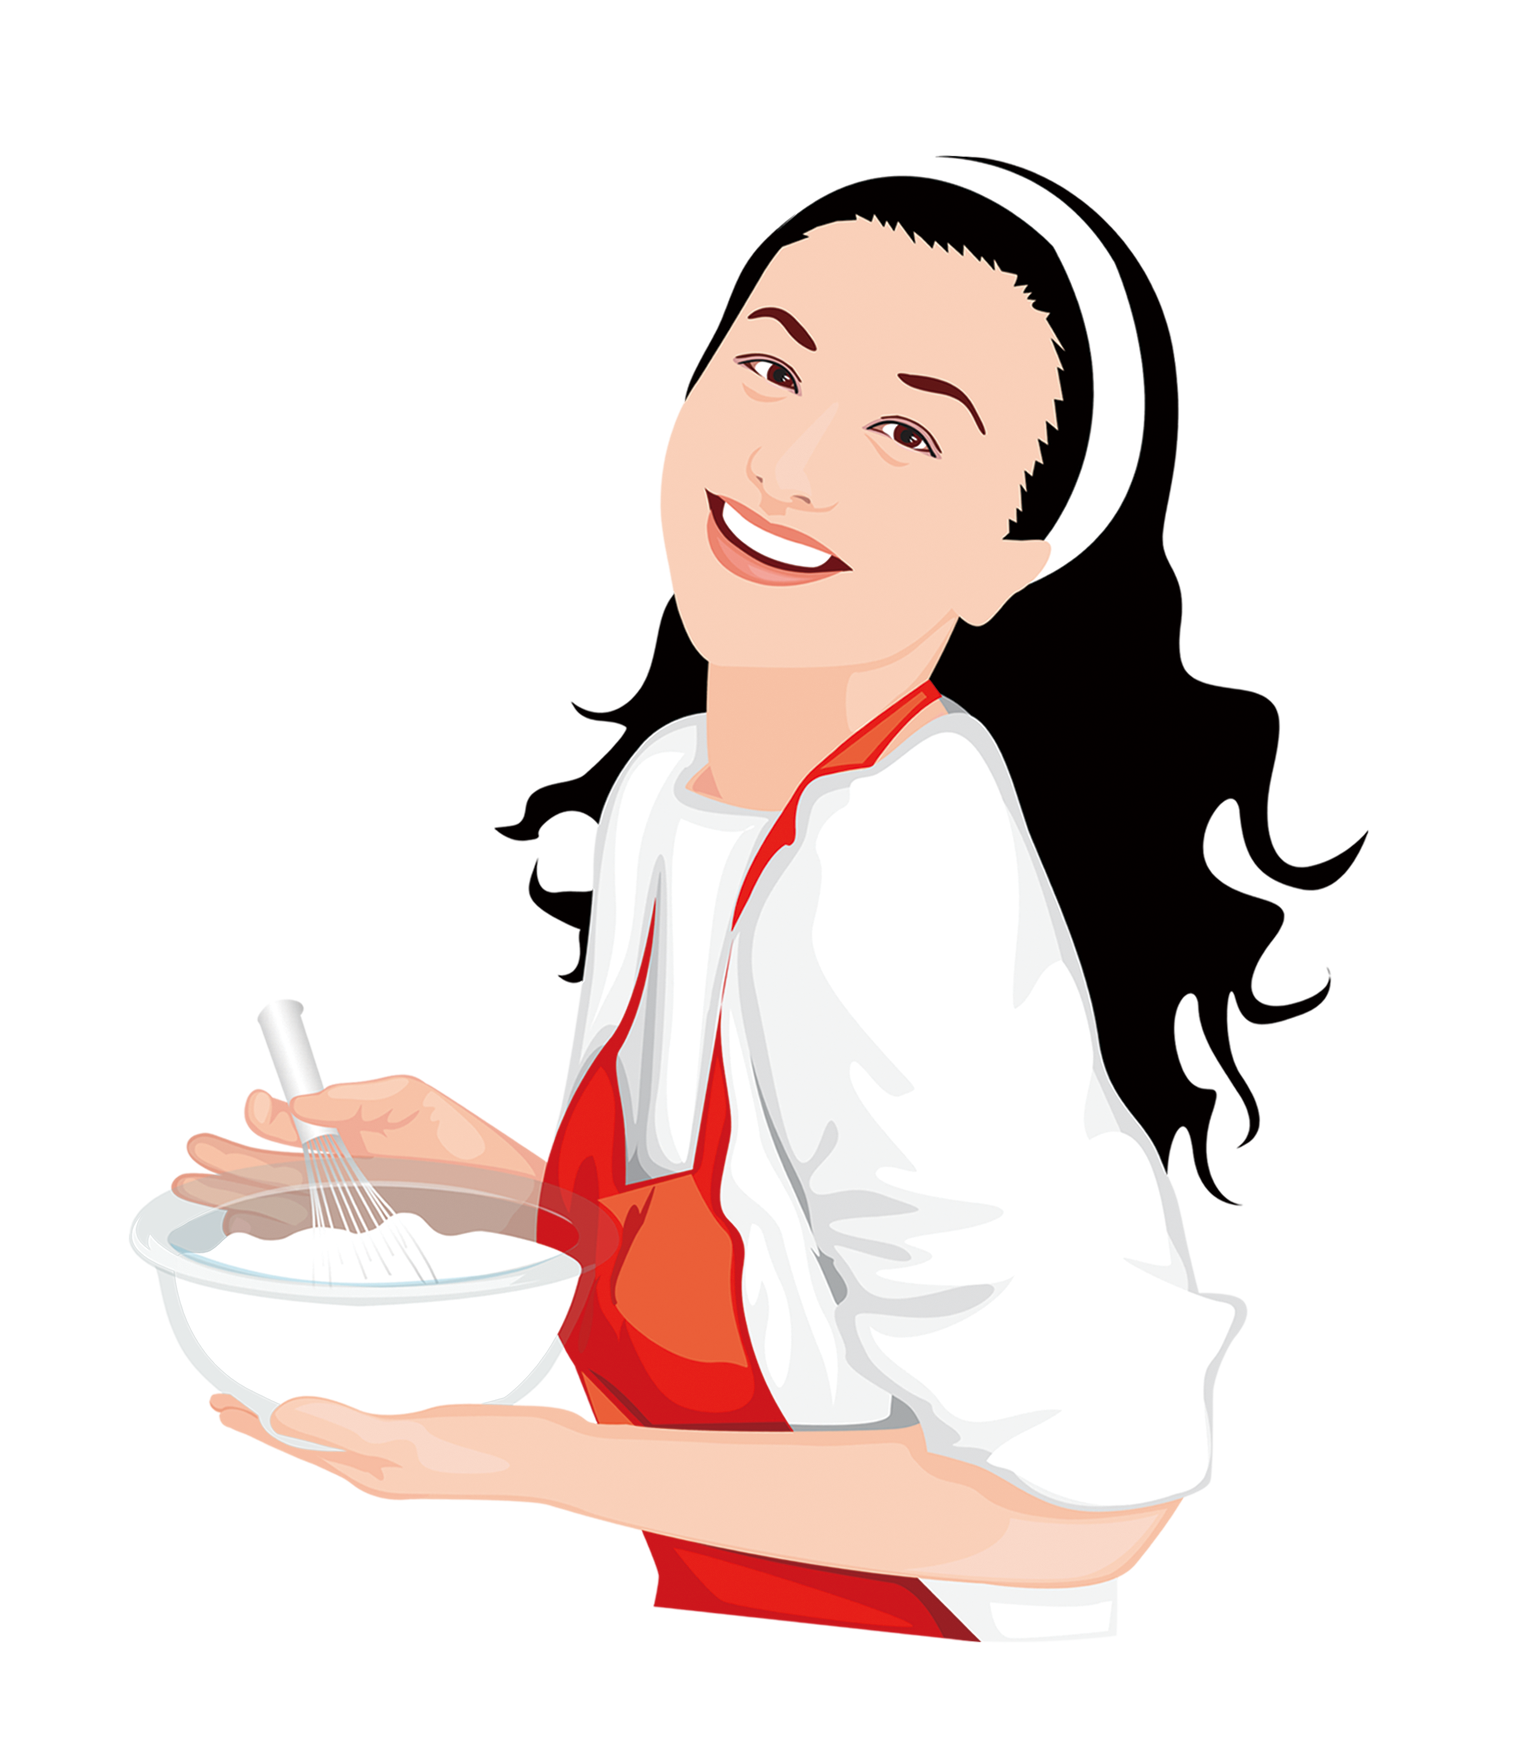 Woman illustration cook a. Girl clipart cooking